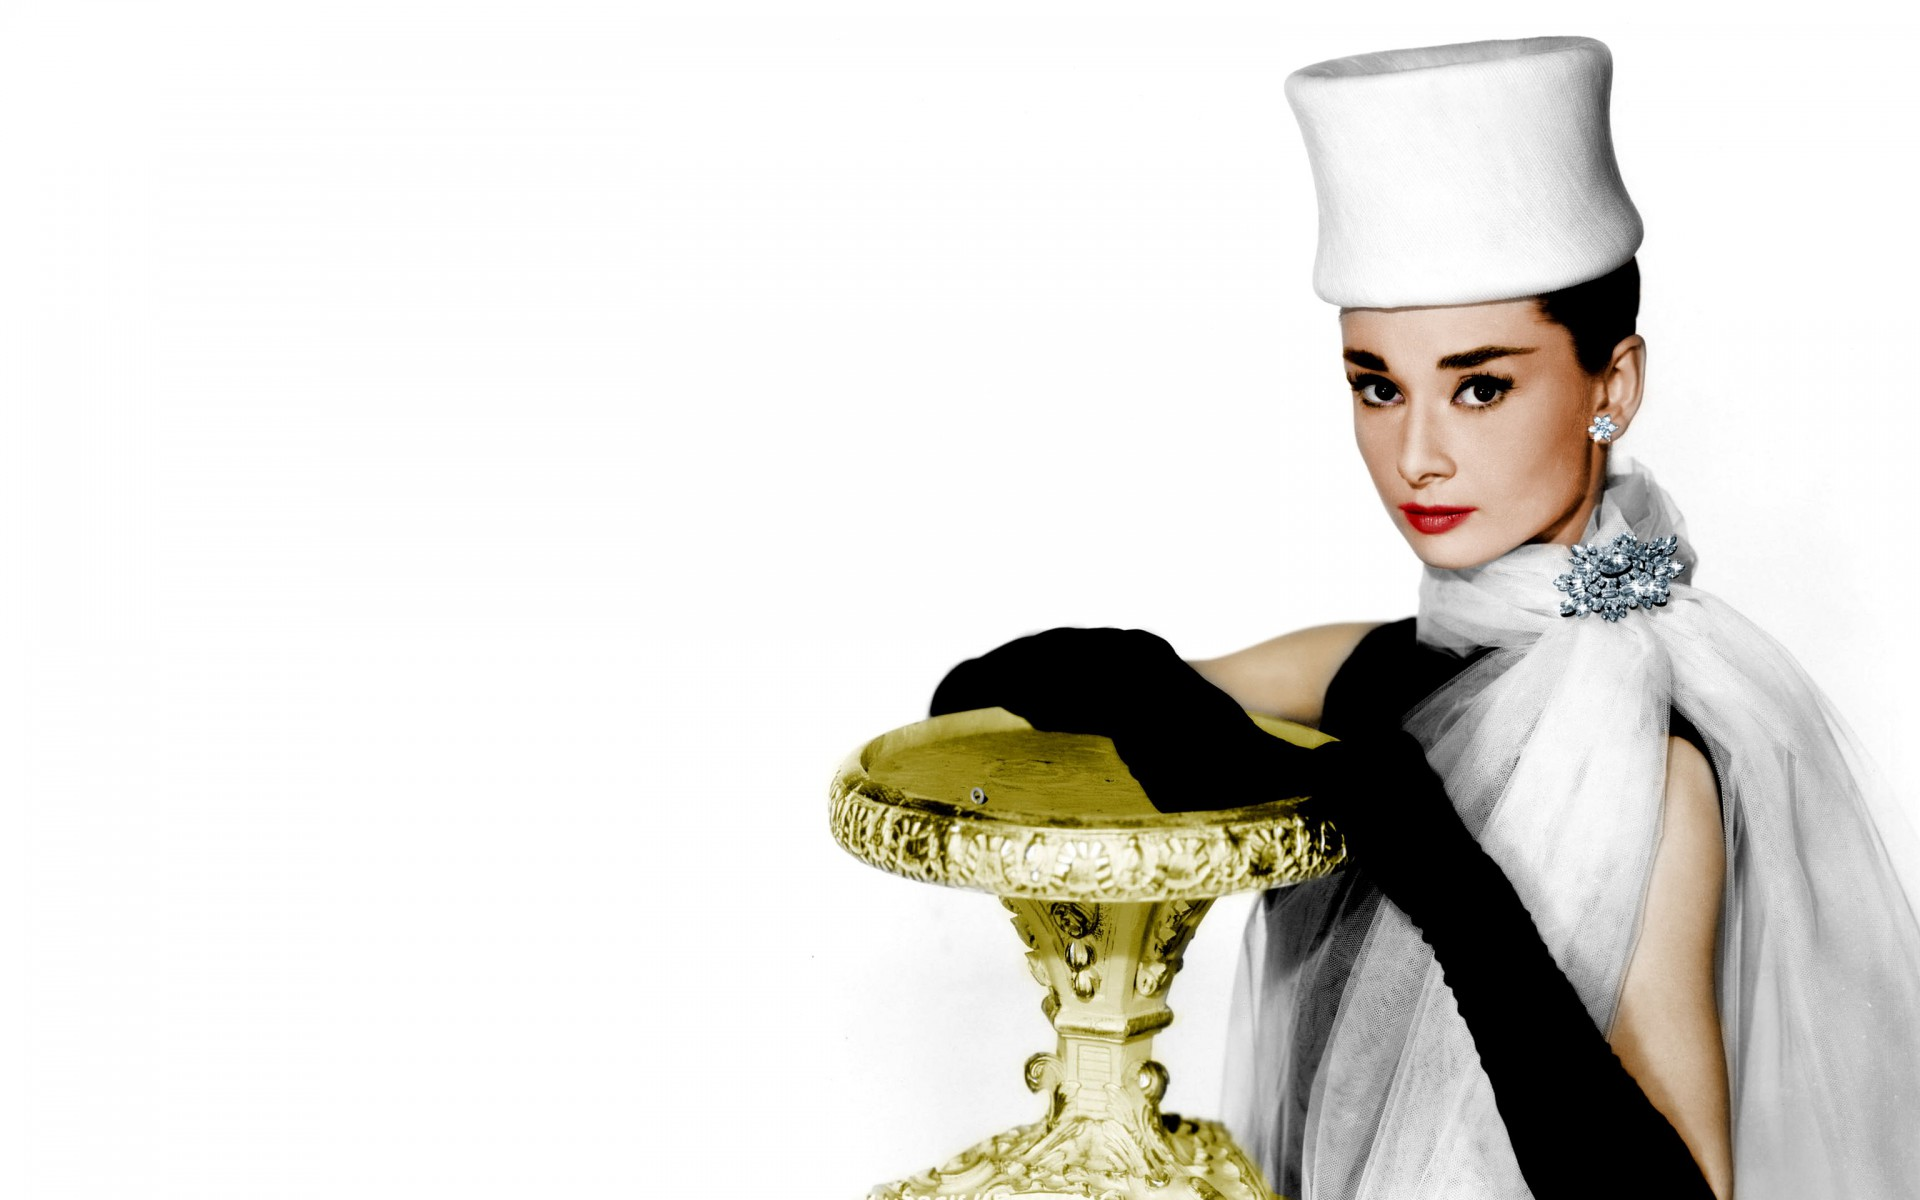 Audrey Hepburn Wallpaper   Wallpaper High Definition High Quality 1920x1200